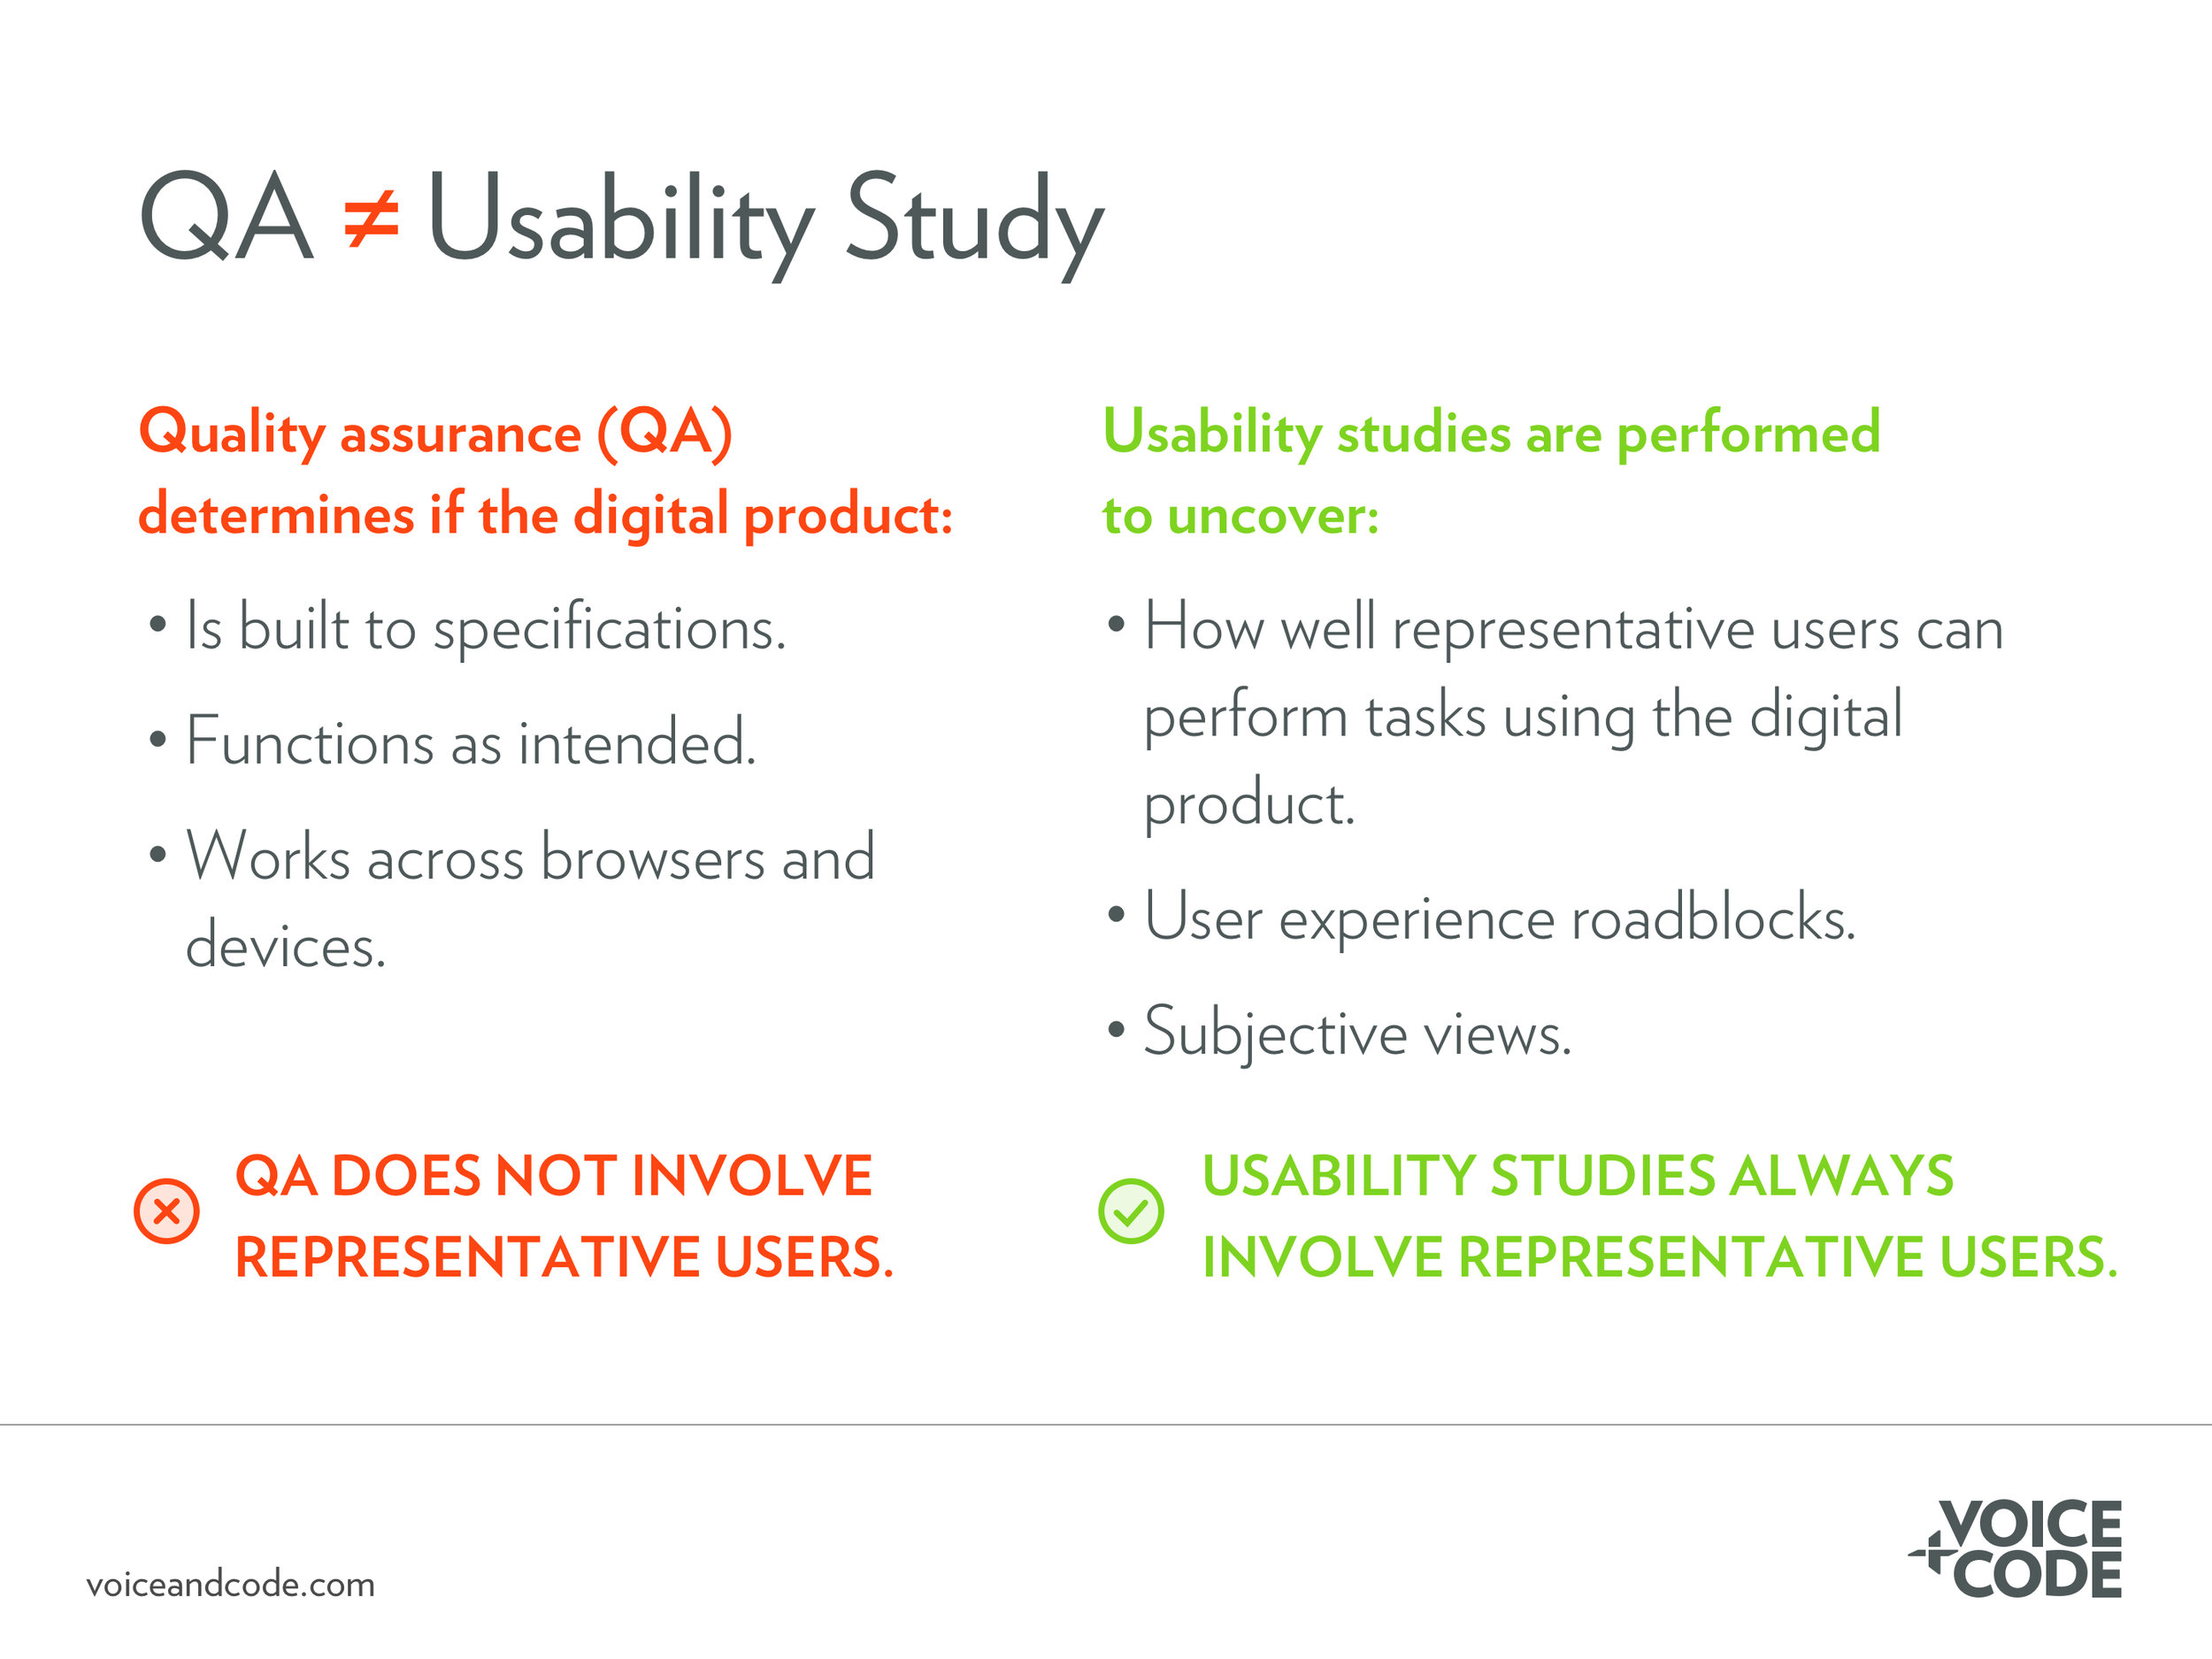 QA is not a usability study